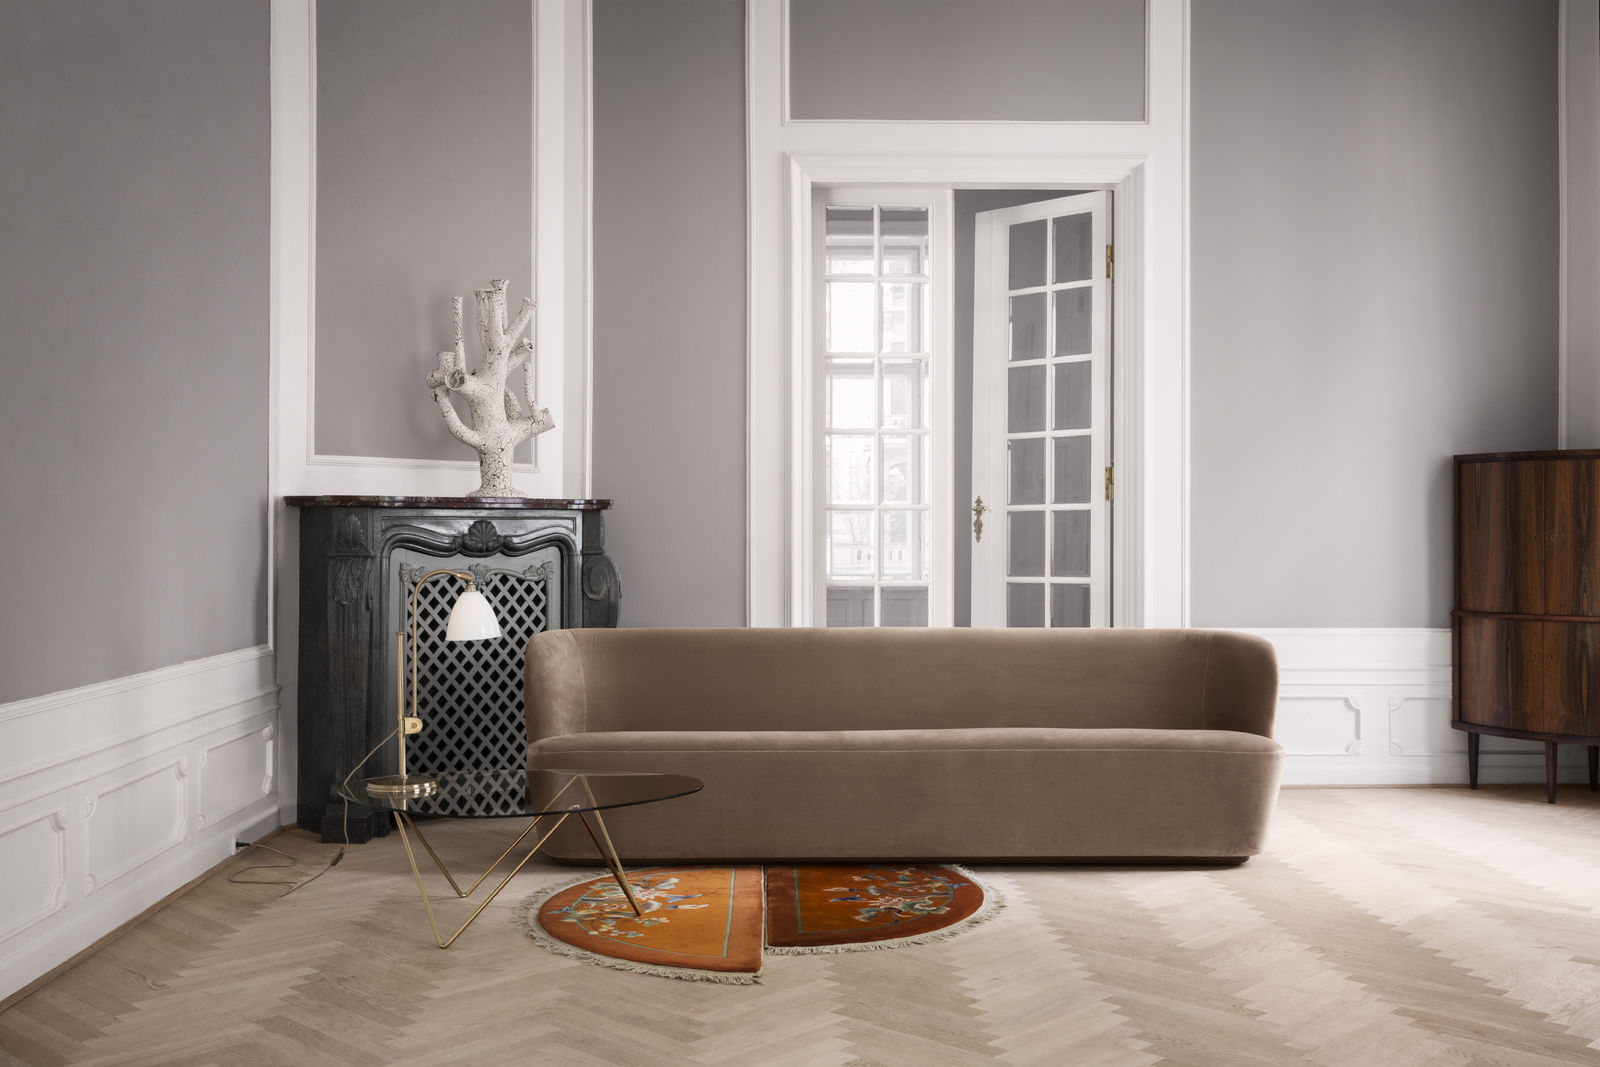 bestlite-bl1-bone-china-brass_pedrera-lounge-table_stay-sofa-260-cm-velluto-cotone-208_on-1600x1600